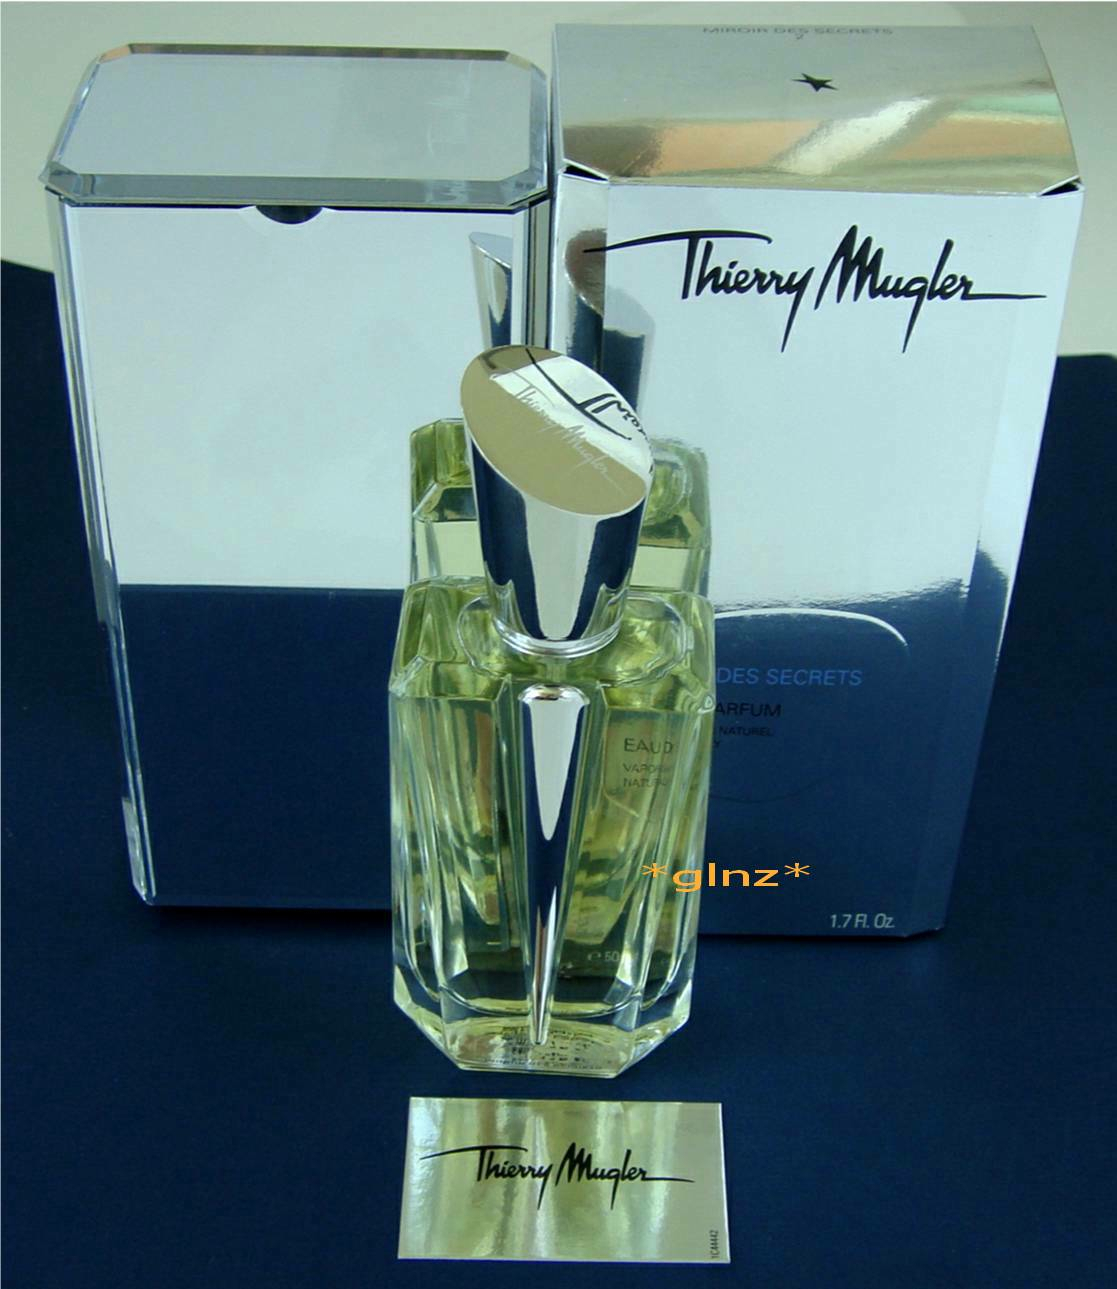 the perfume paradox worldofbeautytips On miroir des secrets thierry mugler